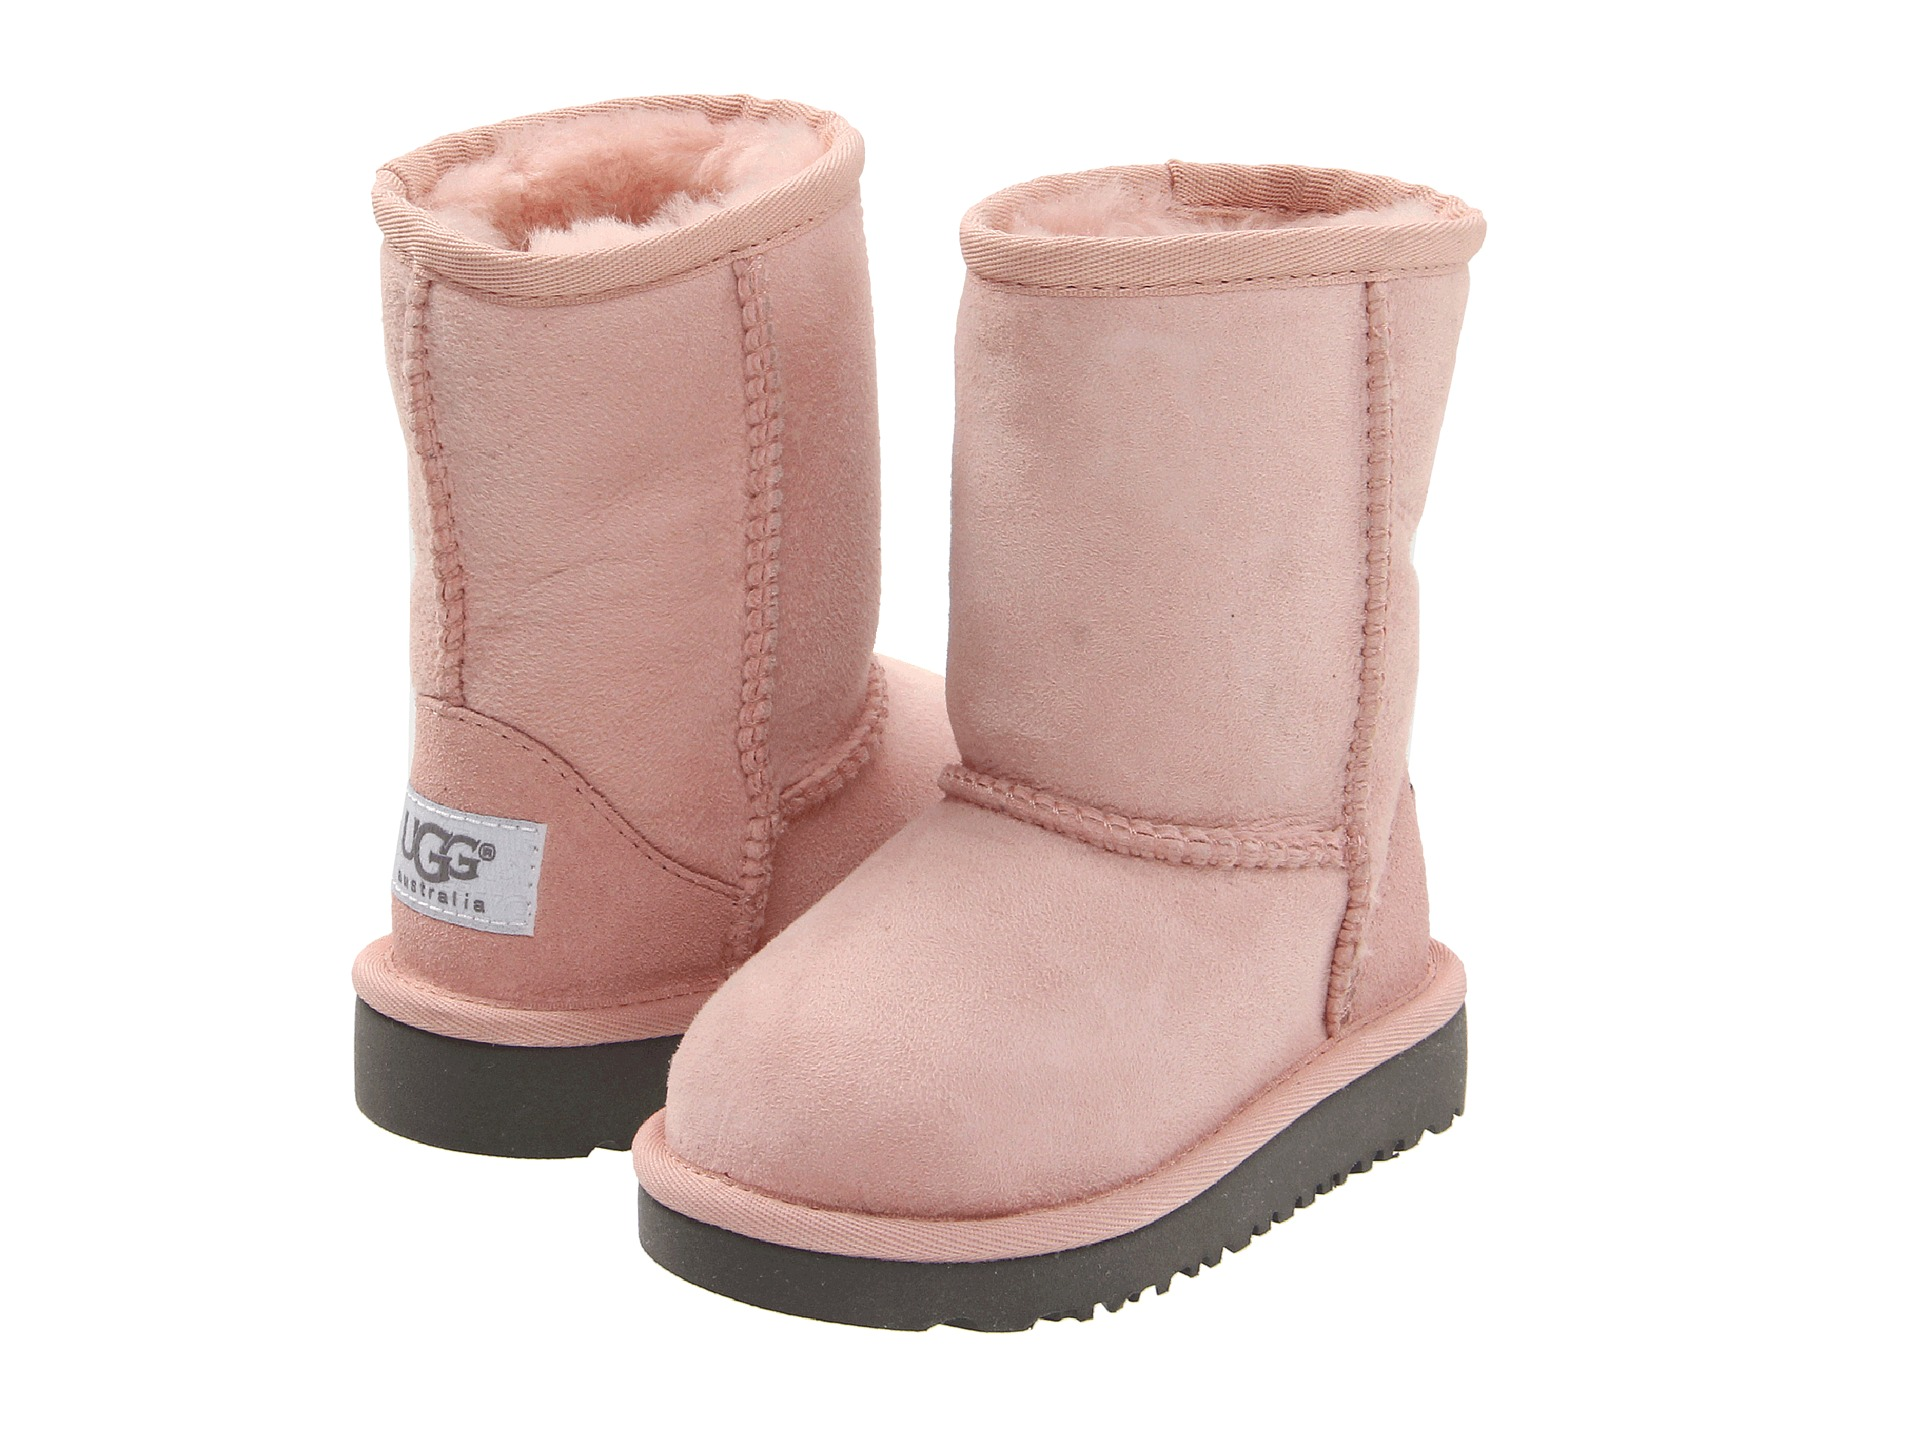 UGG Kids Classic (Toddler/Little Kid) at Zappos.com